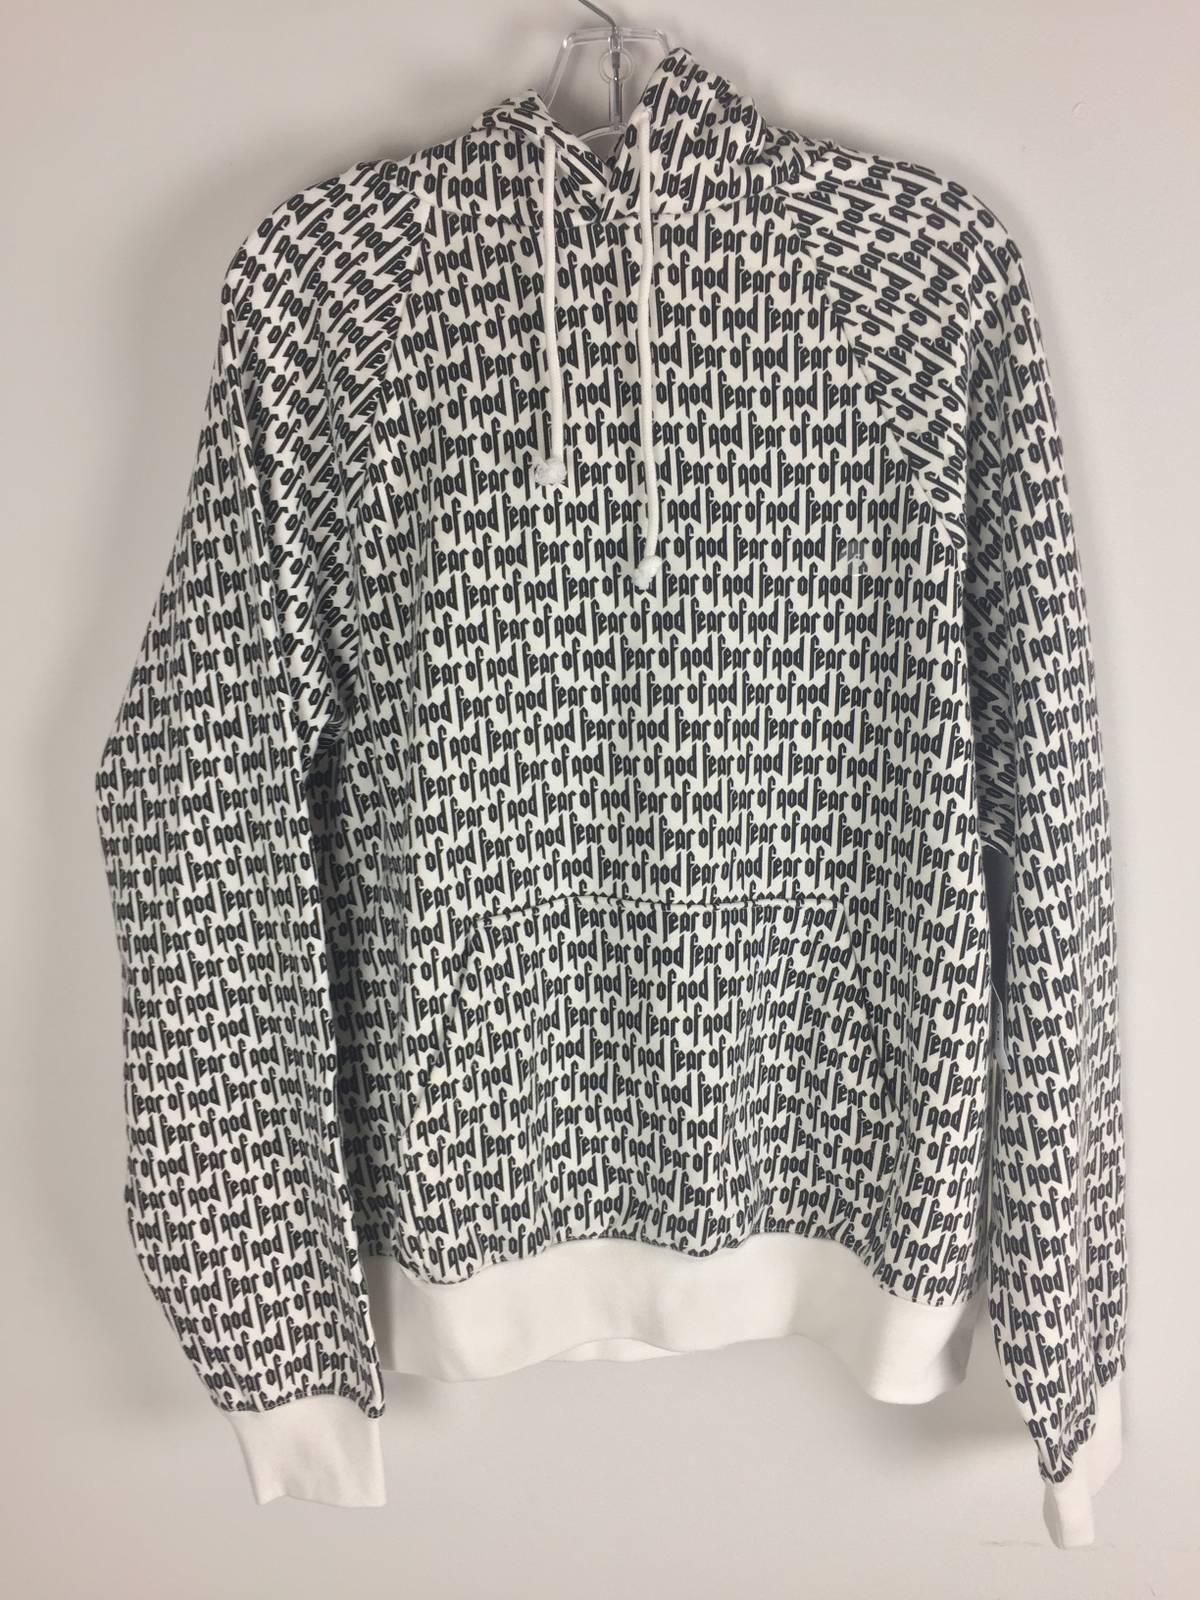 Pacsun FOG All Over Print Hoo Size s Sweatshirts & Hoo s for Sale Grailed